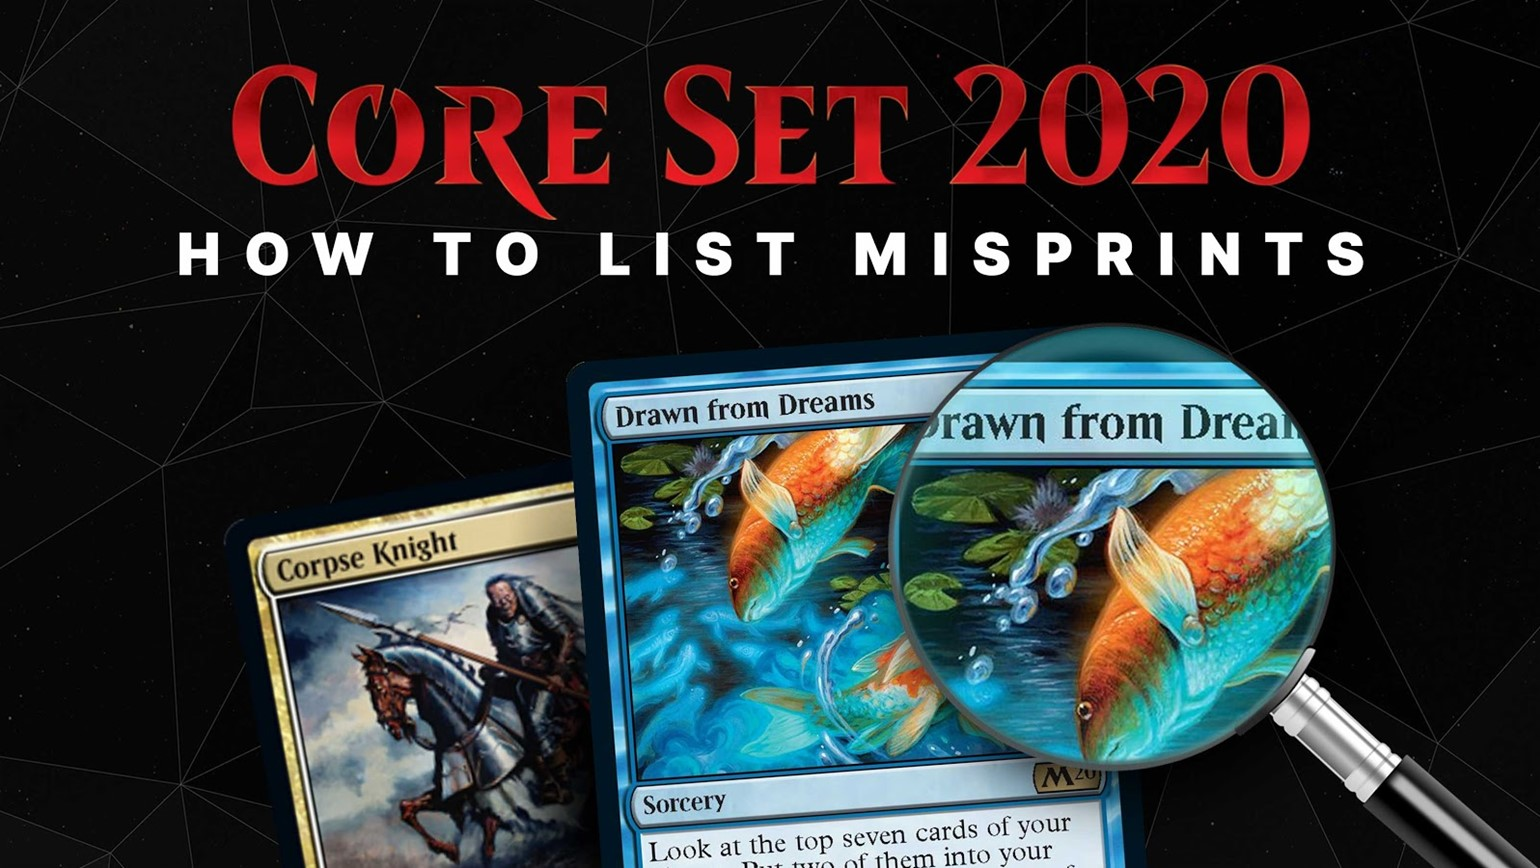 How to List Misprints from Core Set 2020